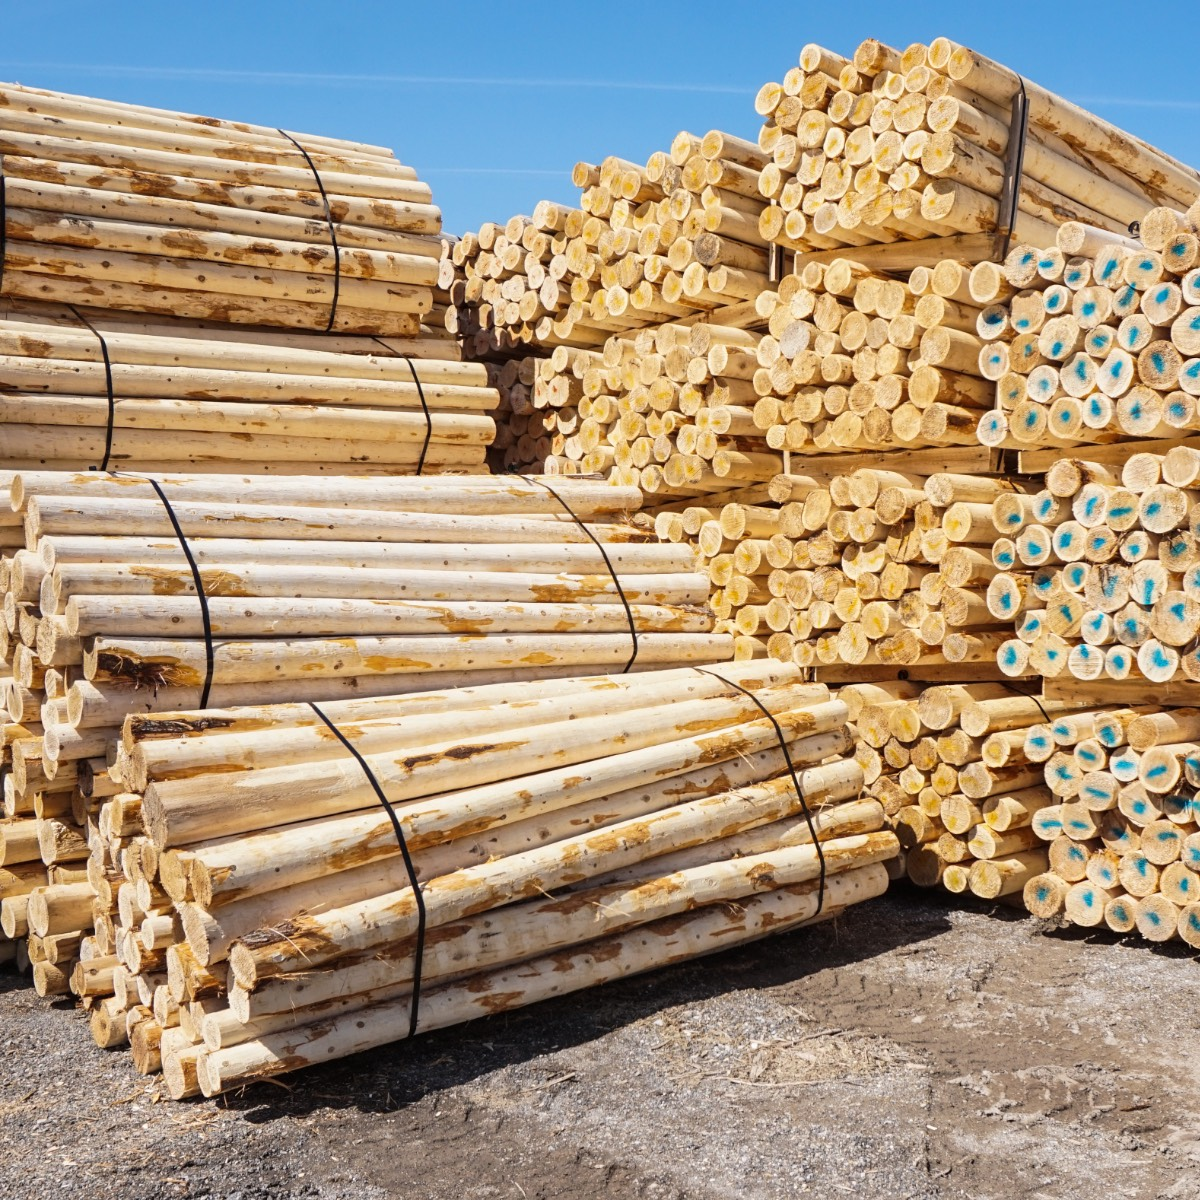 Stacks of cedar fence posts